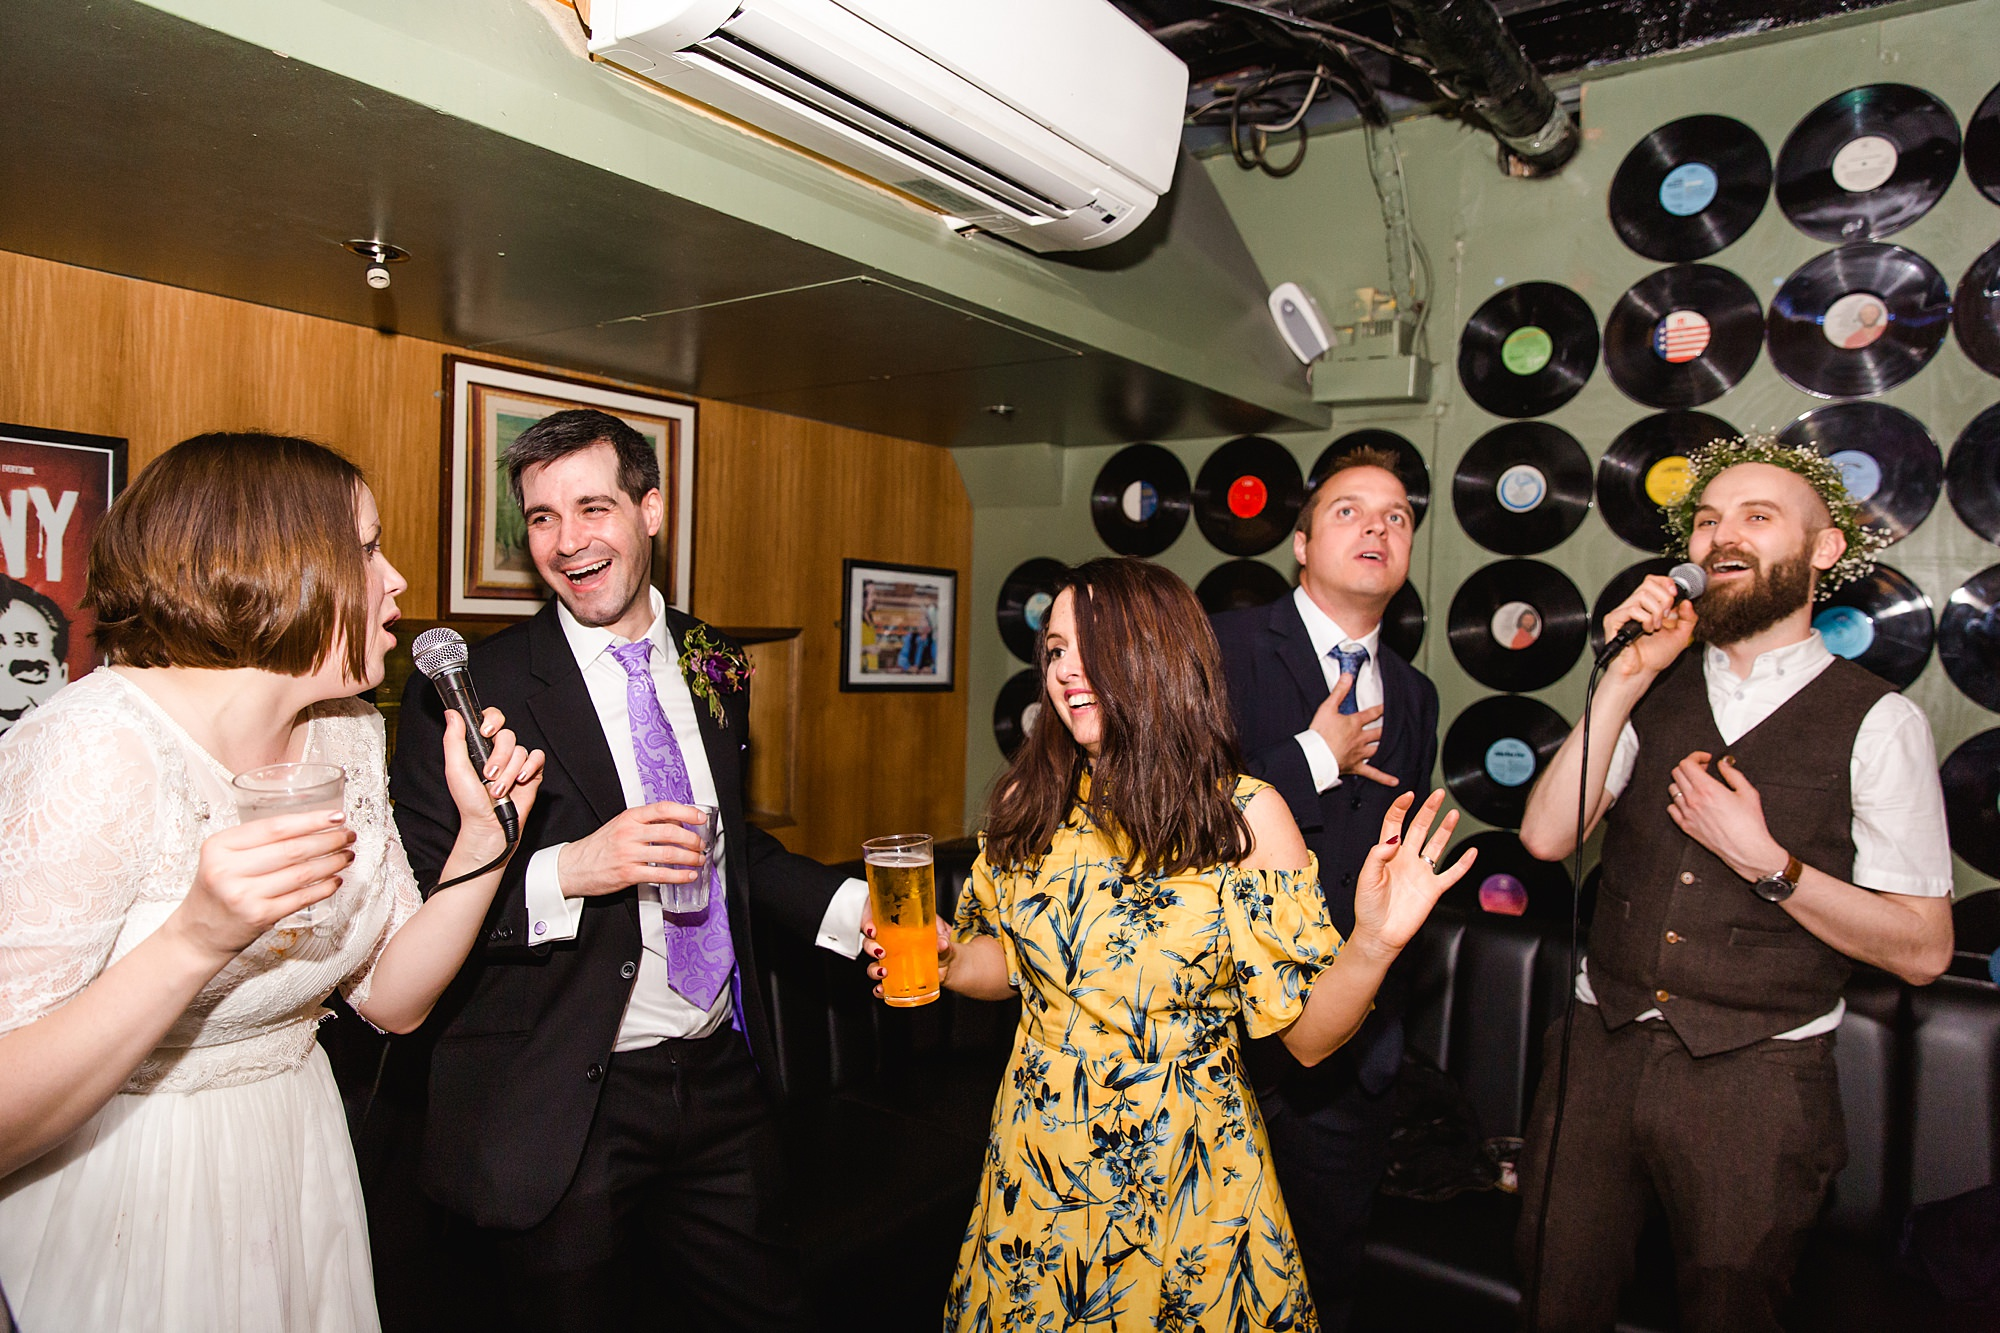 fun london wedding bowling guests singing and laughing